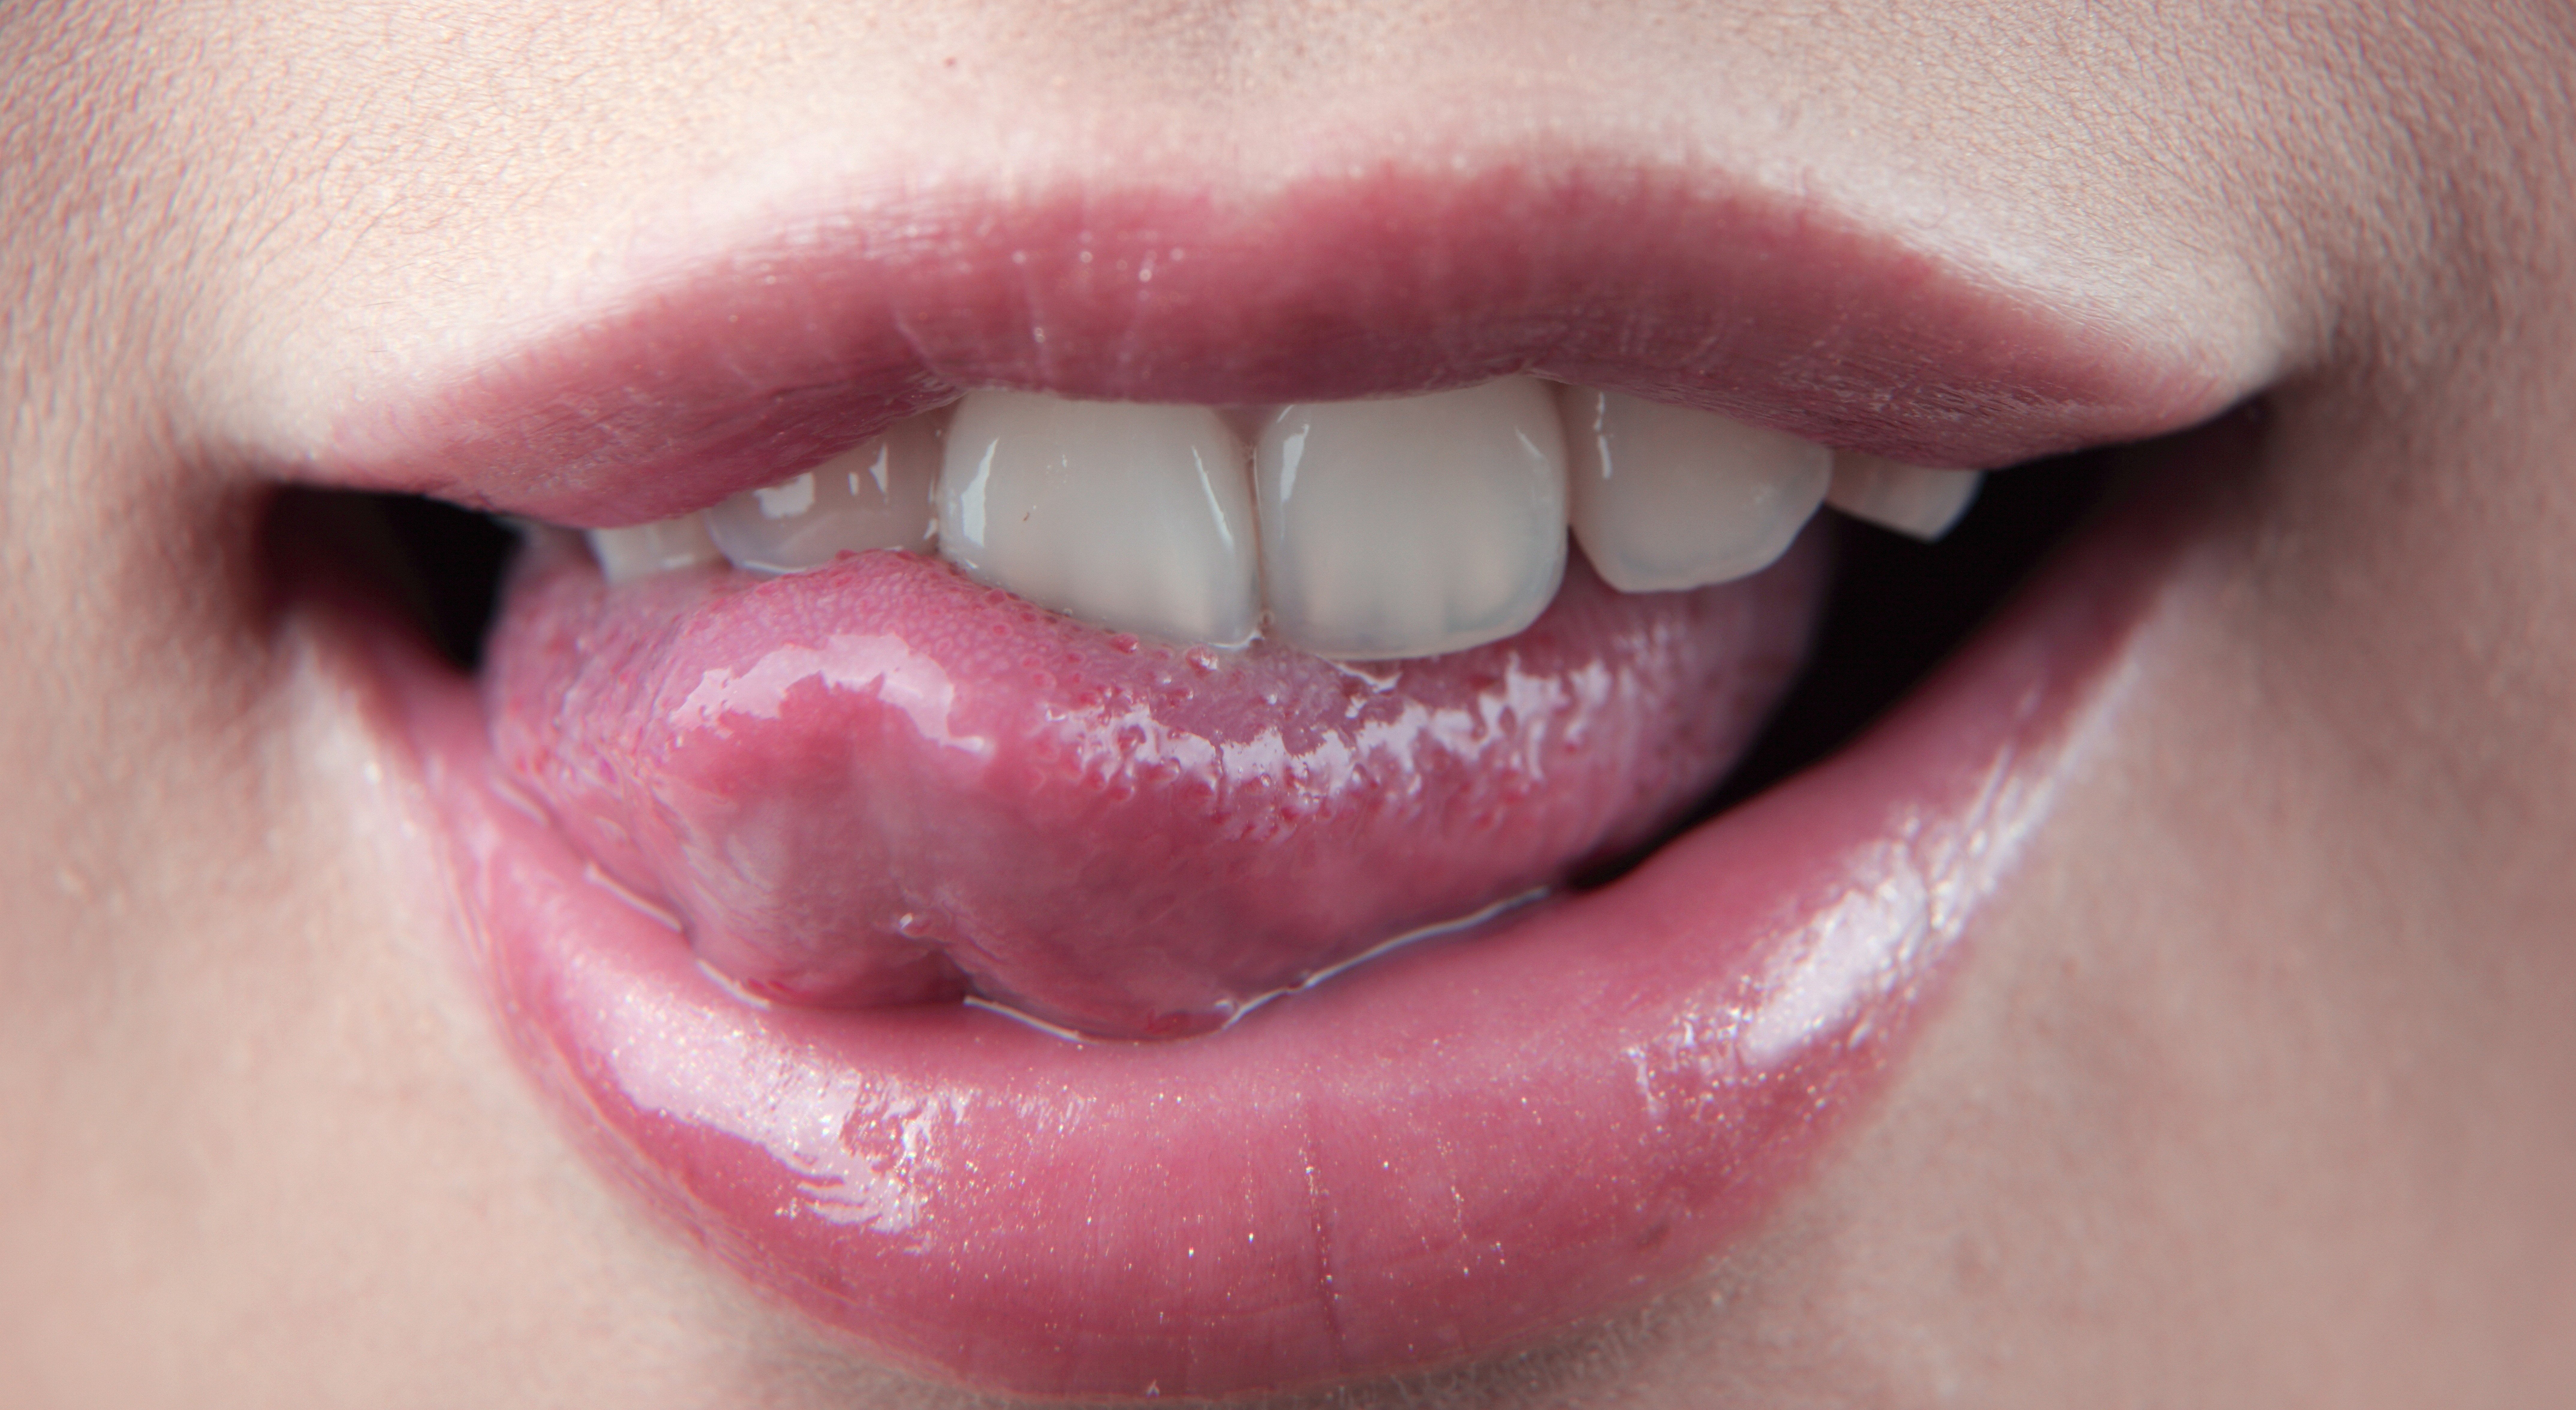 tongue 35m posts - see instagram photos and videos from 'tongue' hashtag.